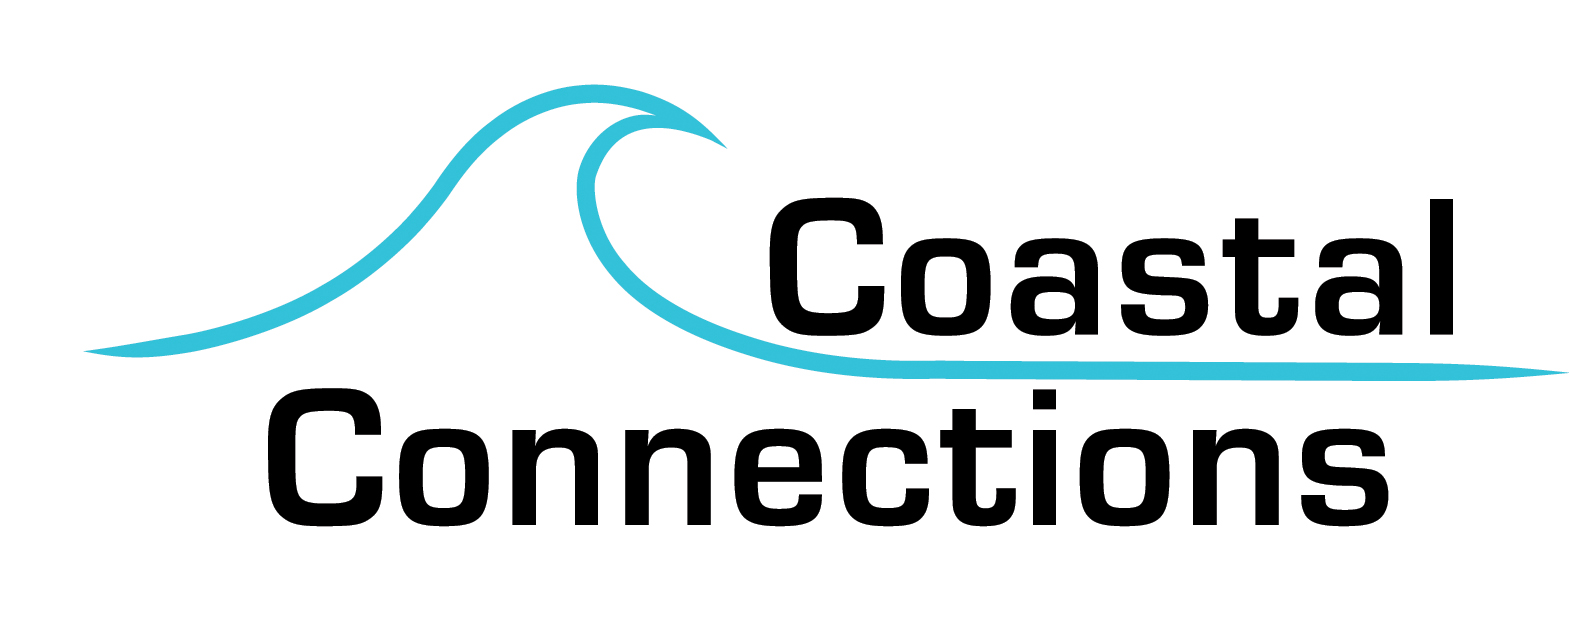 Coastal Connections, Inc. supports people with disabilities to achieve their full potential by creating personalized programs that promote living, working, learning and playing in the community.   -